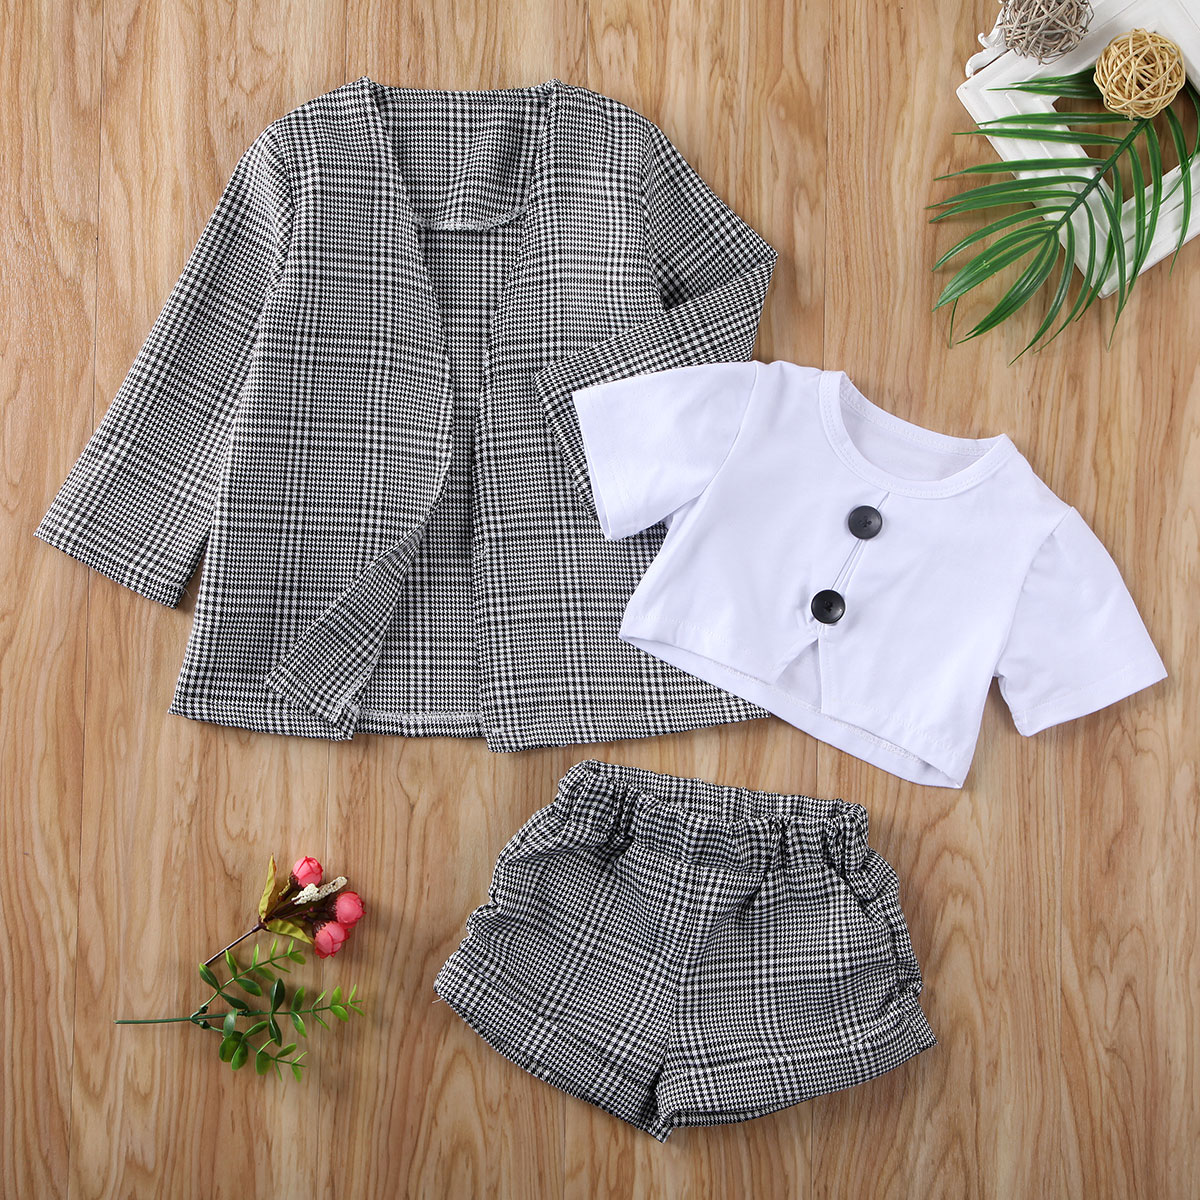 Pudcoco Toddler Baby Girl Clothes Solid Color Crop T-Shirt Plaids Long Sleeve Coat Tops Short Pants 3Pcs Outfits Clothes